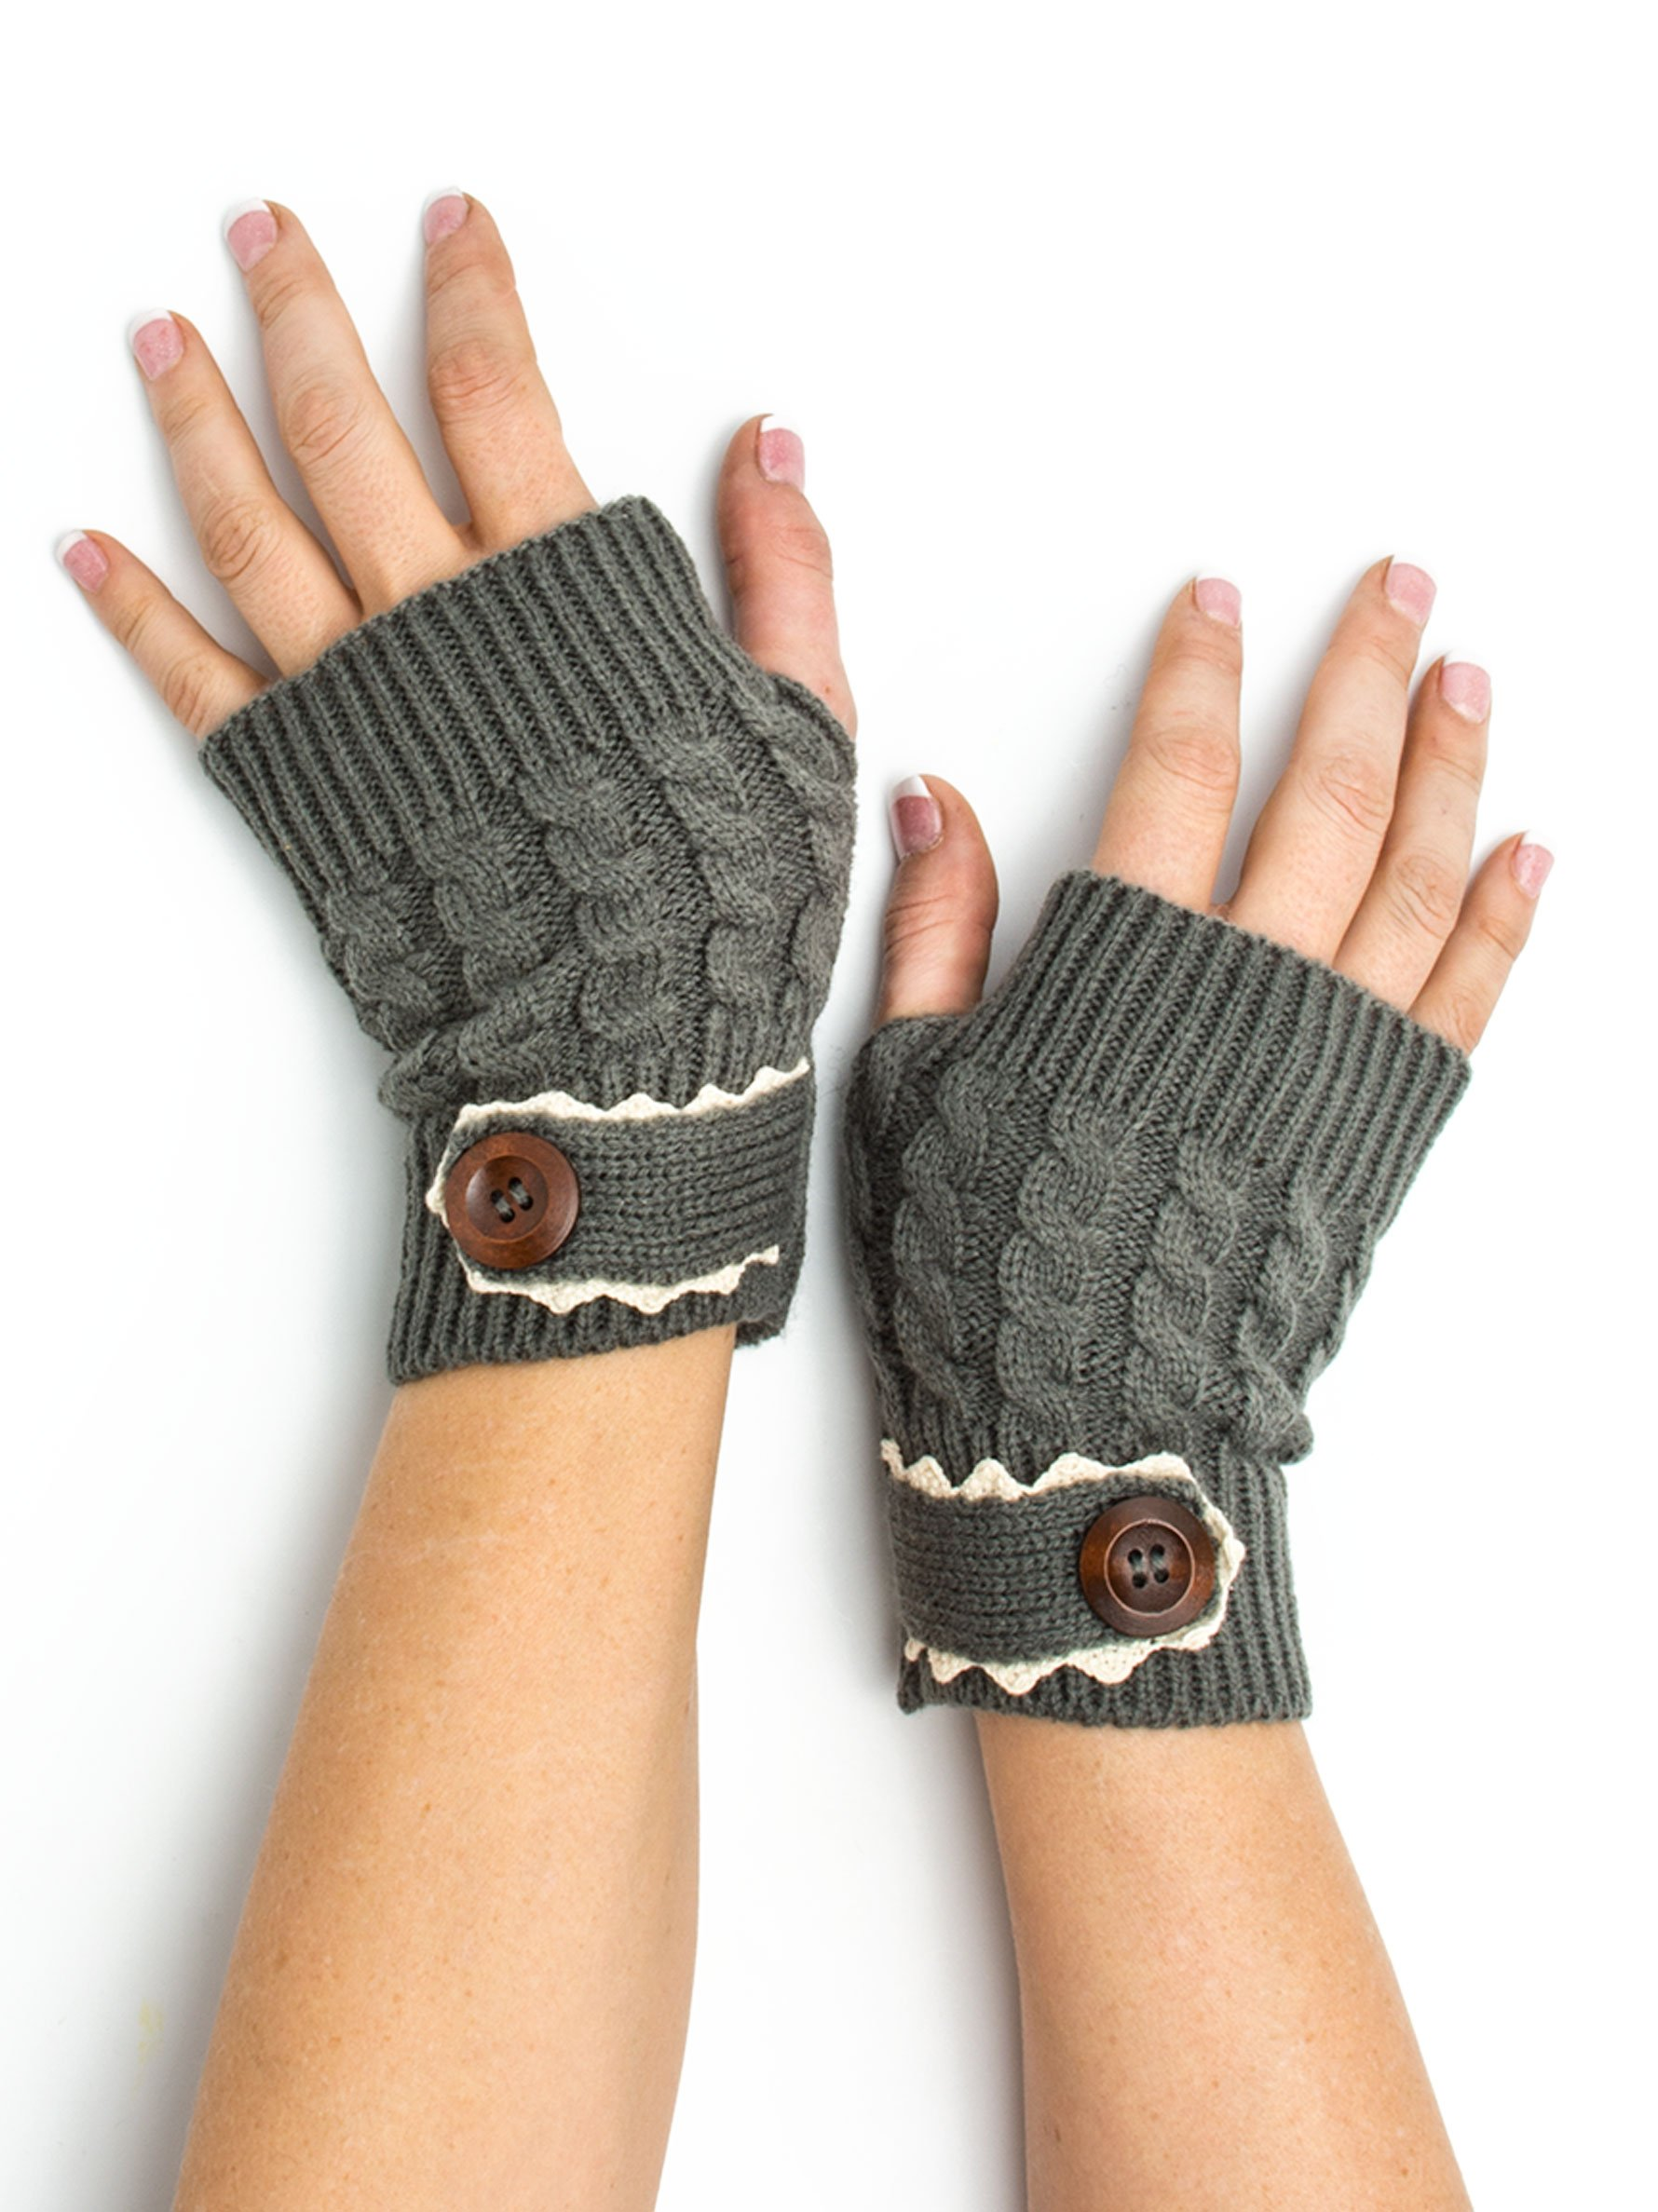 Bohomonde, Tawny Cable Knit Boho Mori Style Armwarmers/Fingerless Gloves with Crochet Lace (Rain Cloud) by Bohomonde